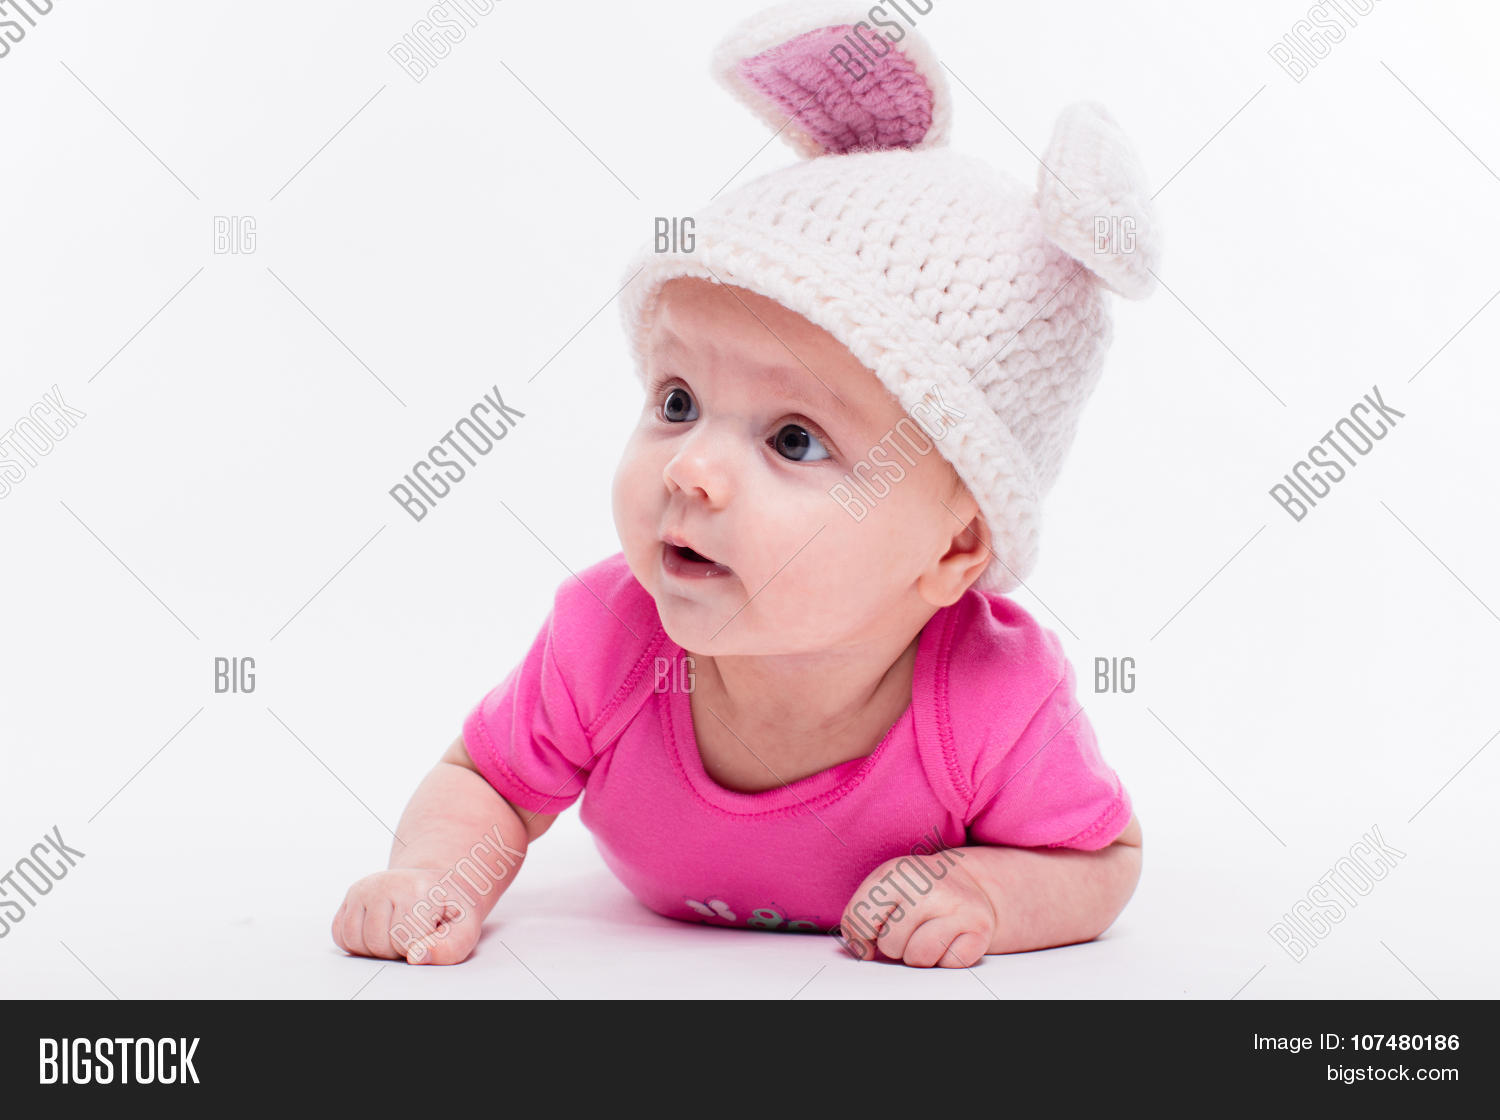 8eb21acbc0e5 cute baby girl lying in a bright red T-shirt on a white background wearing  a hat in the form of a Christmas bunny with pink ears and tail with depth  of ...